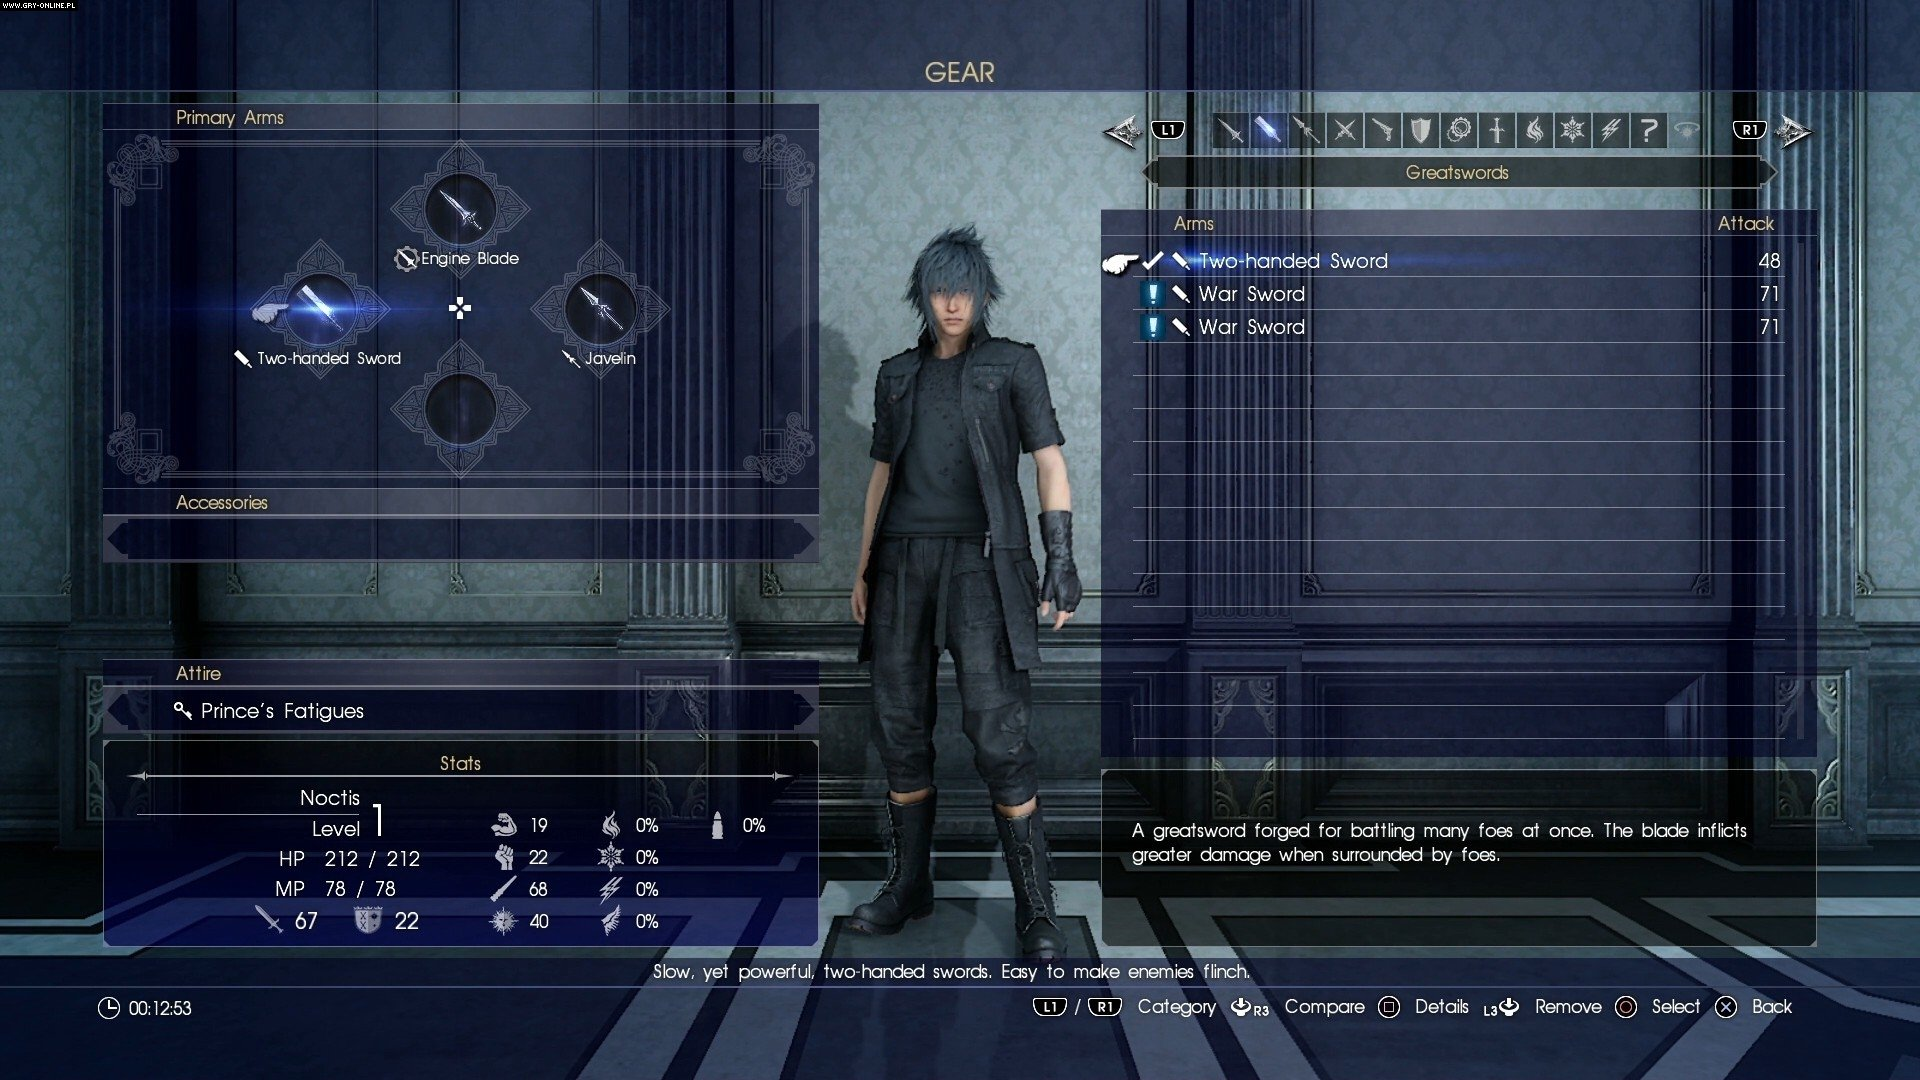 Final Fantasy XV PS4, XONE Gry Screen 280/393, Square-Enix / Eidos